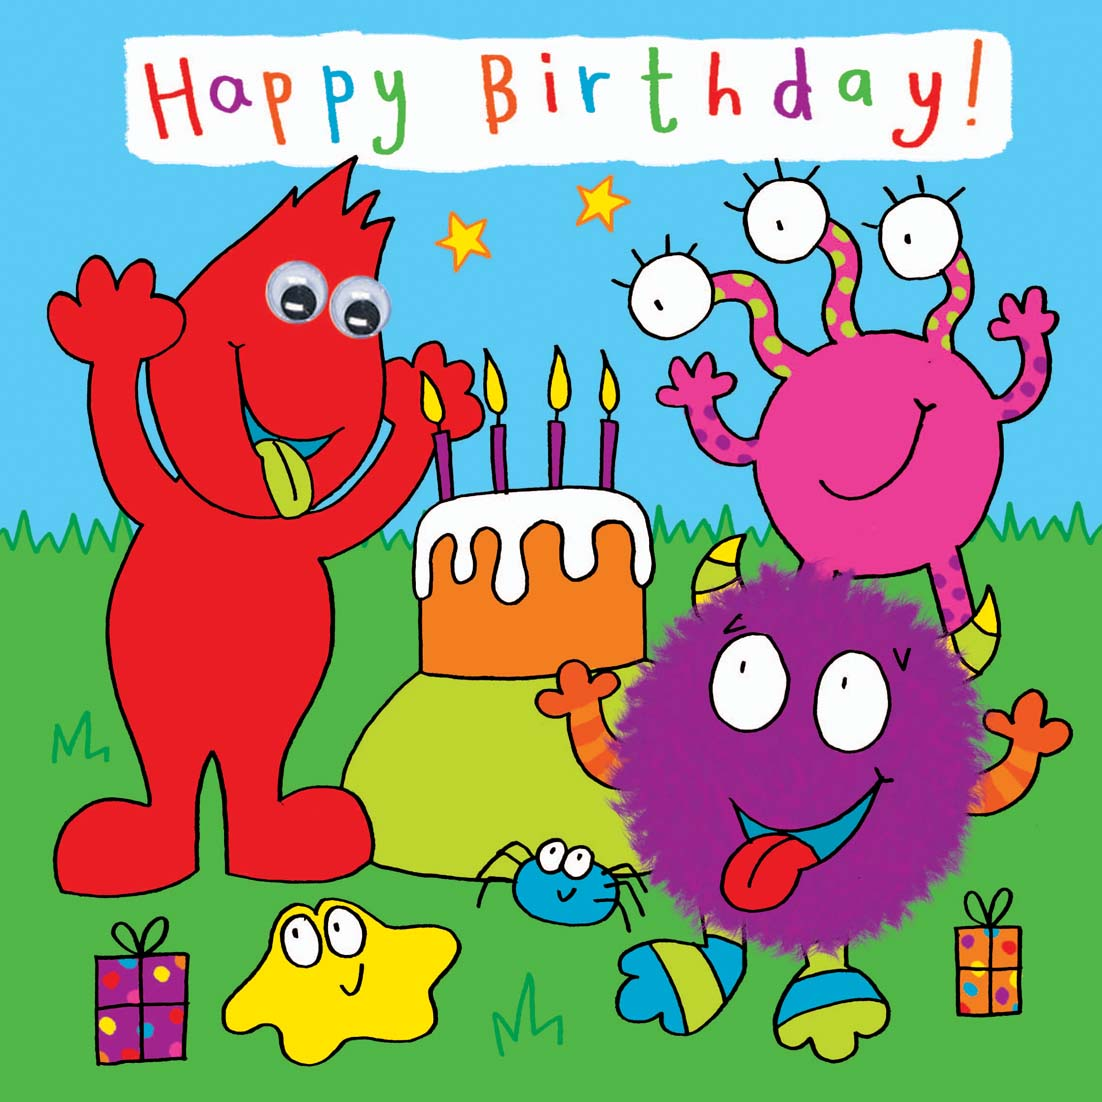 Kids Birthday Cards – Birthday Cards for Kids